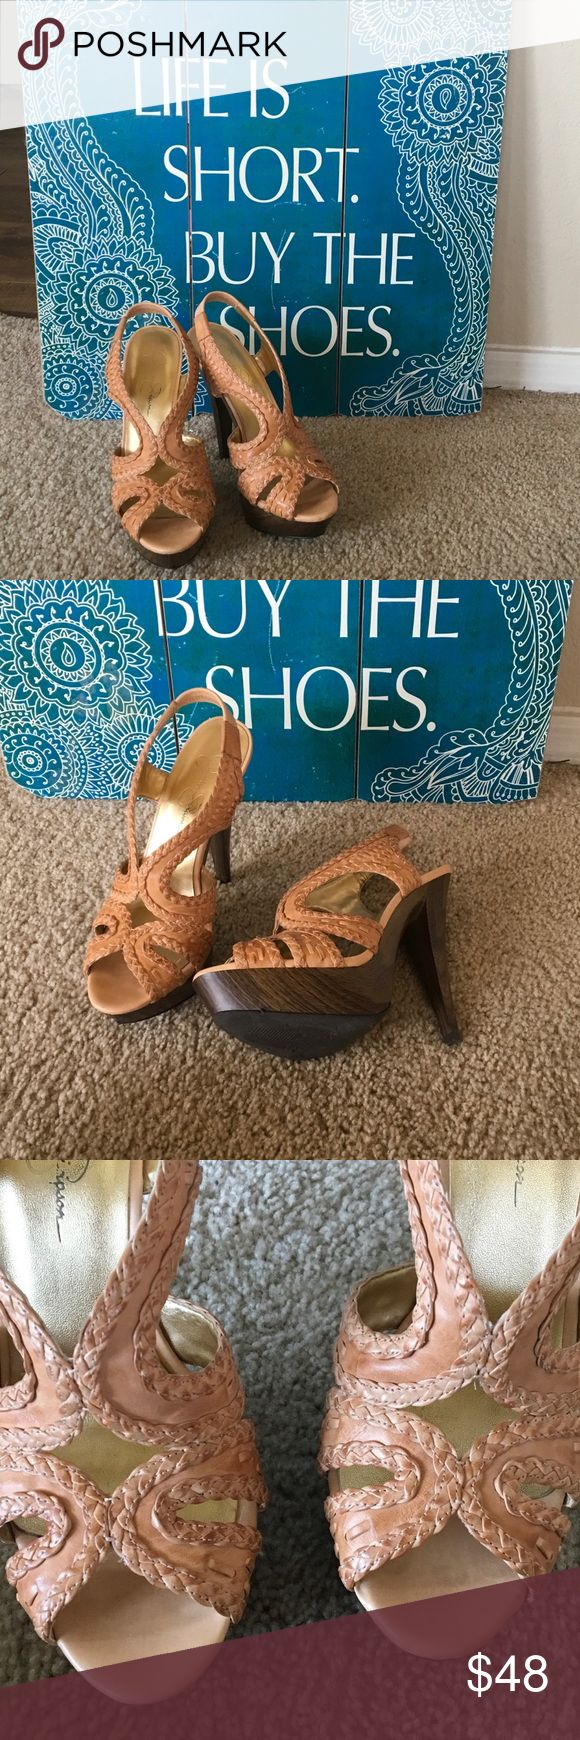 """Jessica Simpson Sandal Leather HIGH HEEL 8 1/2 B Platform  high sandal, wood look base, has had some fill ins, superficially....wood tone markers... 5"""" heels 1 3/4"""" platform. light brown leather woven sandal , neutral. Size 81/2 B / 38 1/2 B🎀❣️ Jessica Simpson Shoes Sandals"""